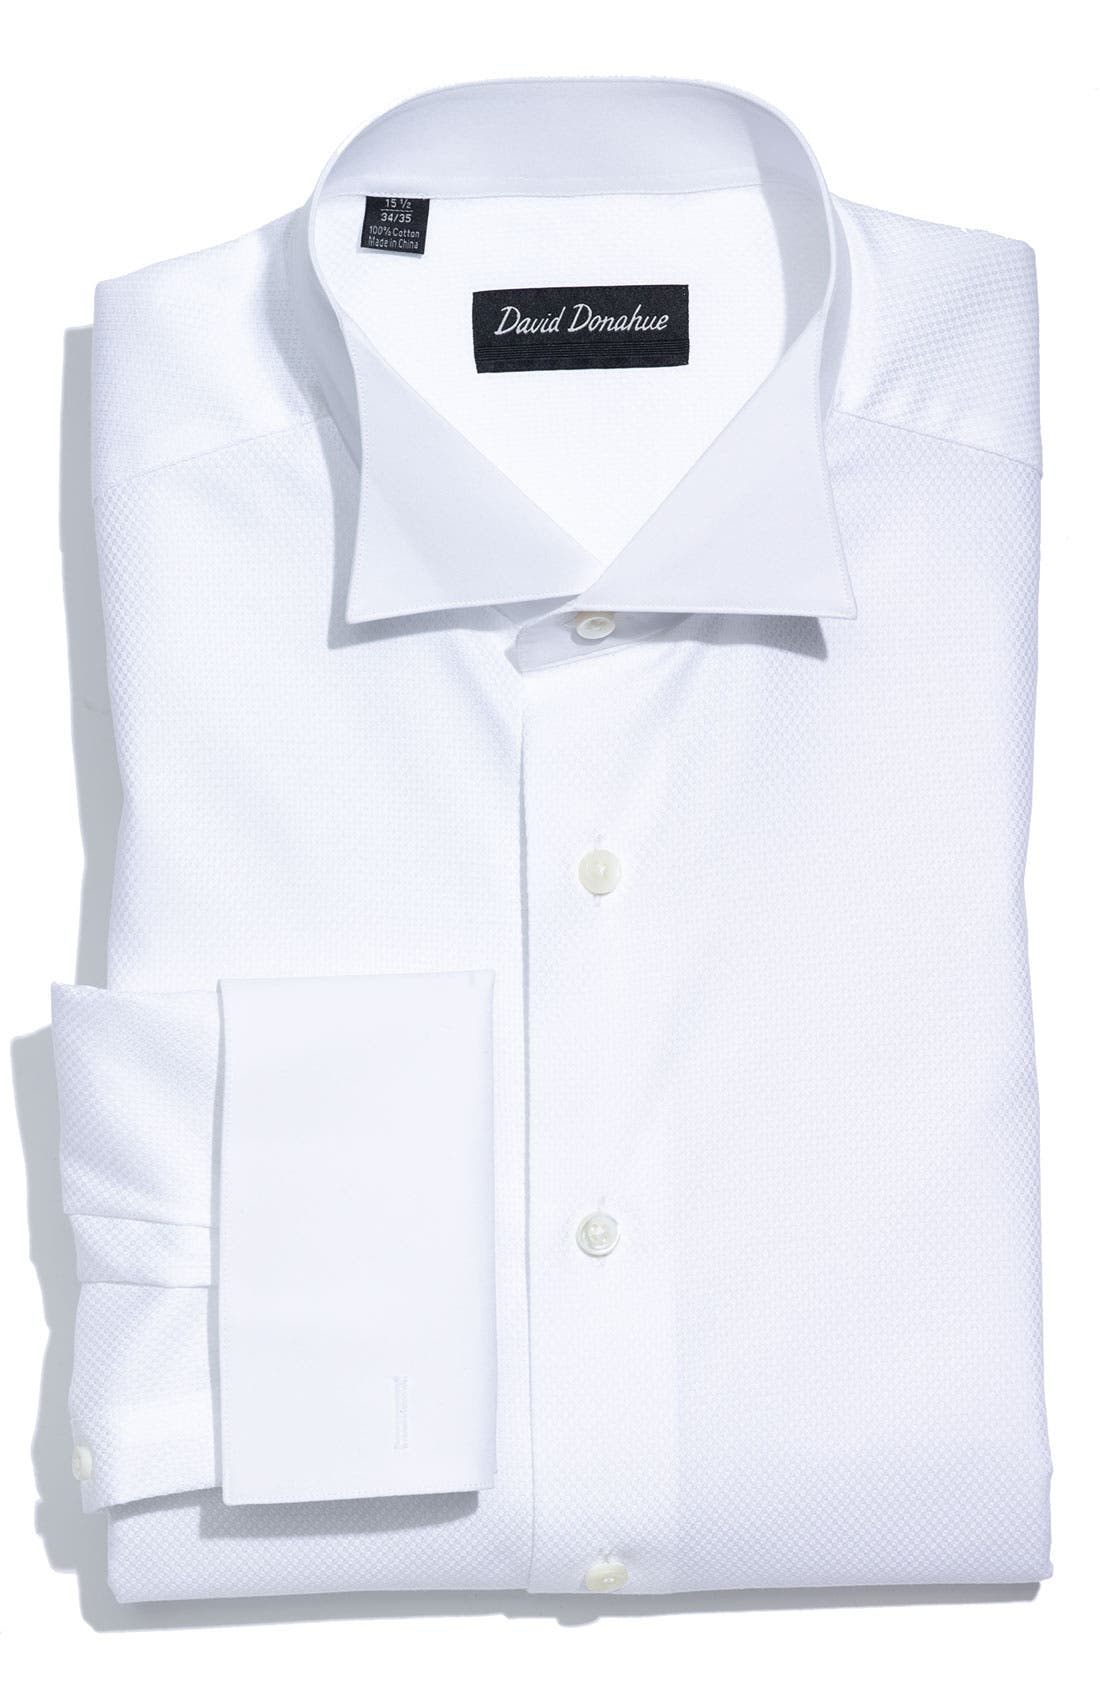 Main Image - David Donahue Regular Fit Tuxedo Shirt